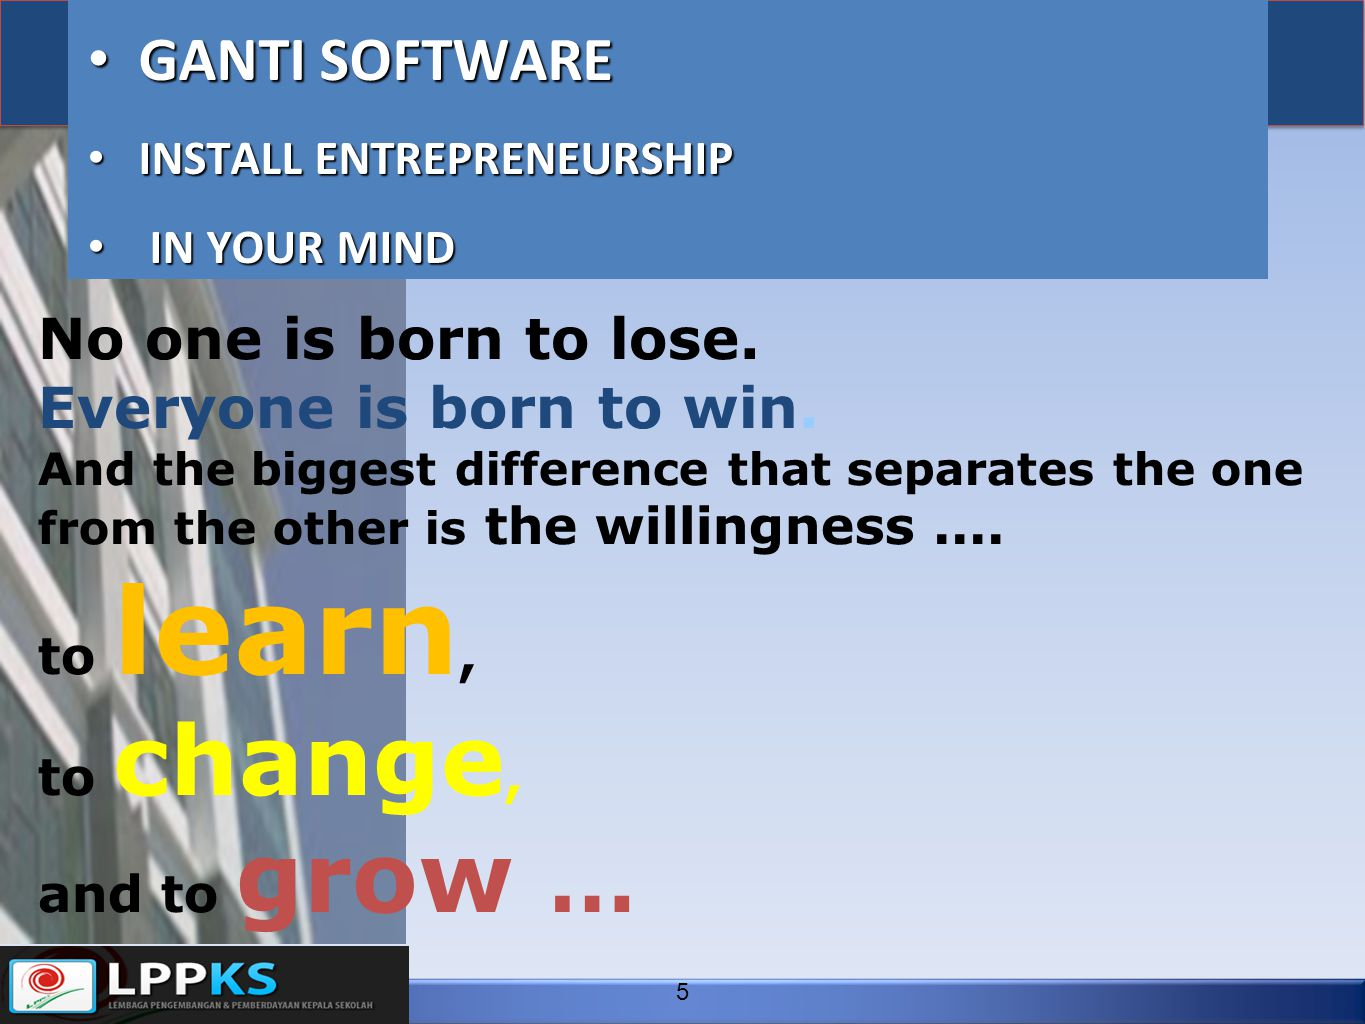 GANTI SOFTWARE No one is born to lose. Everyone is born to win.